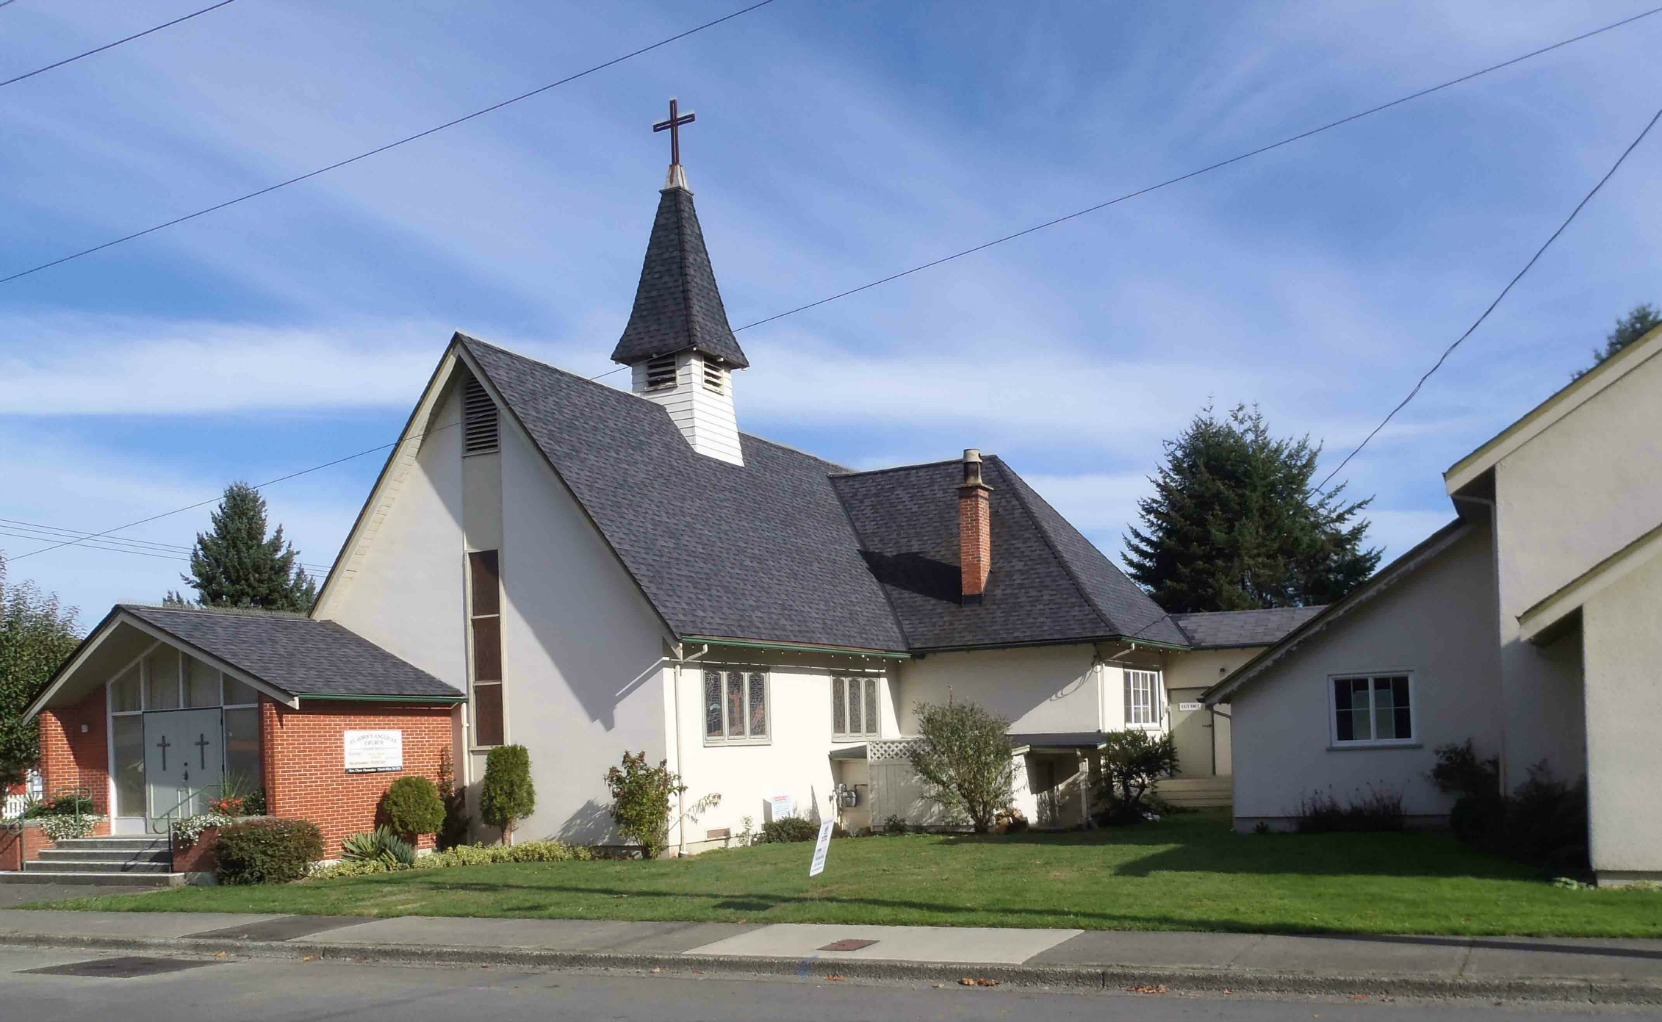 St. John's Anglican Church, Jubilee Street, Duncan, B.C. Dedicated in 1905 by the Grand Master of B.C.